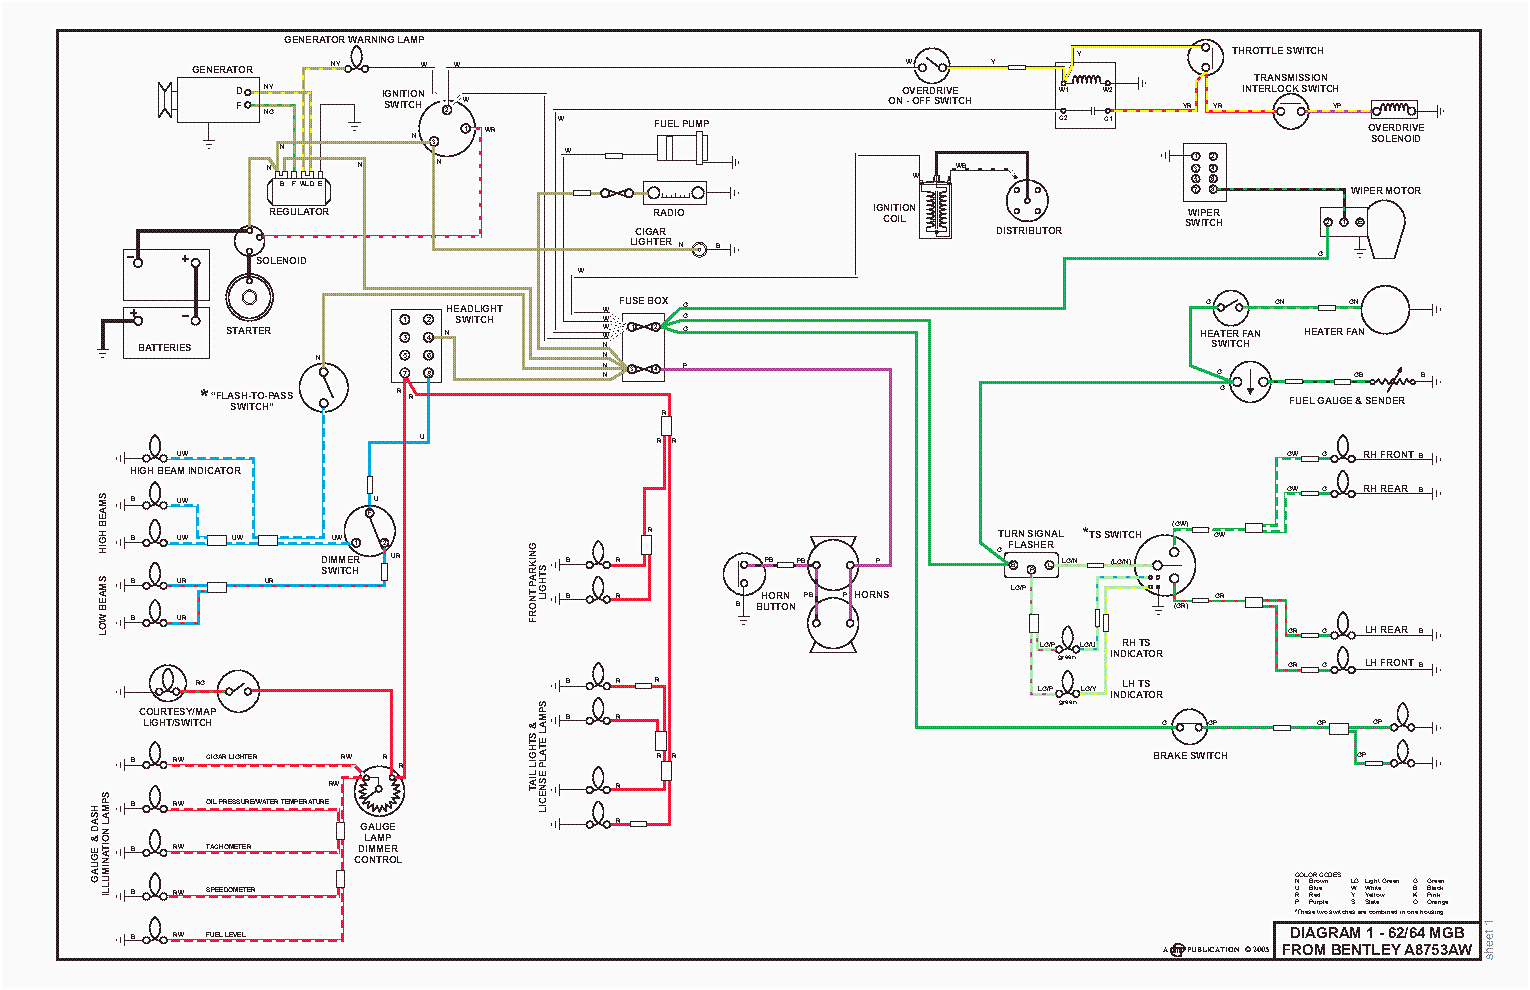 Diagram Household Electrical Wiring Diagrams For Common Adorable 17 - House Electrical Wiring Diagram